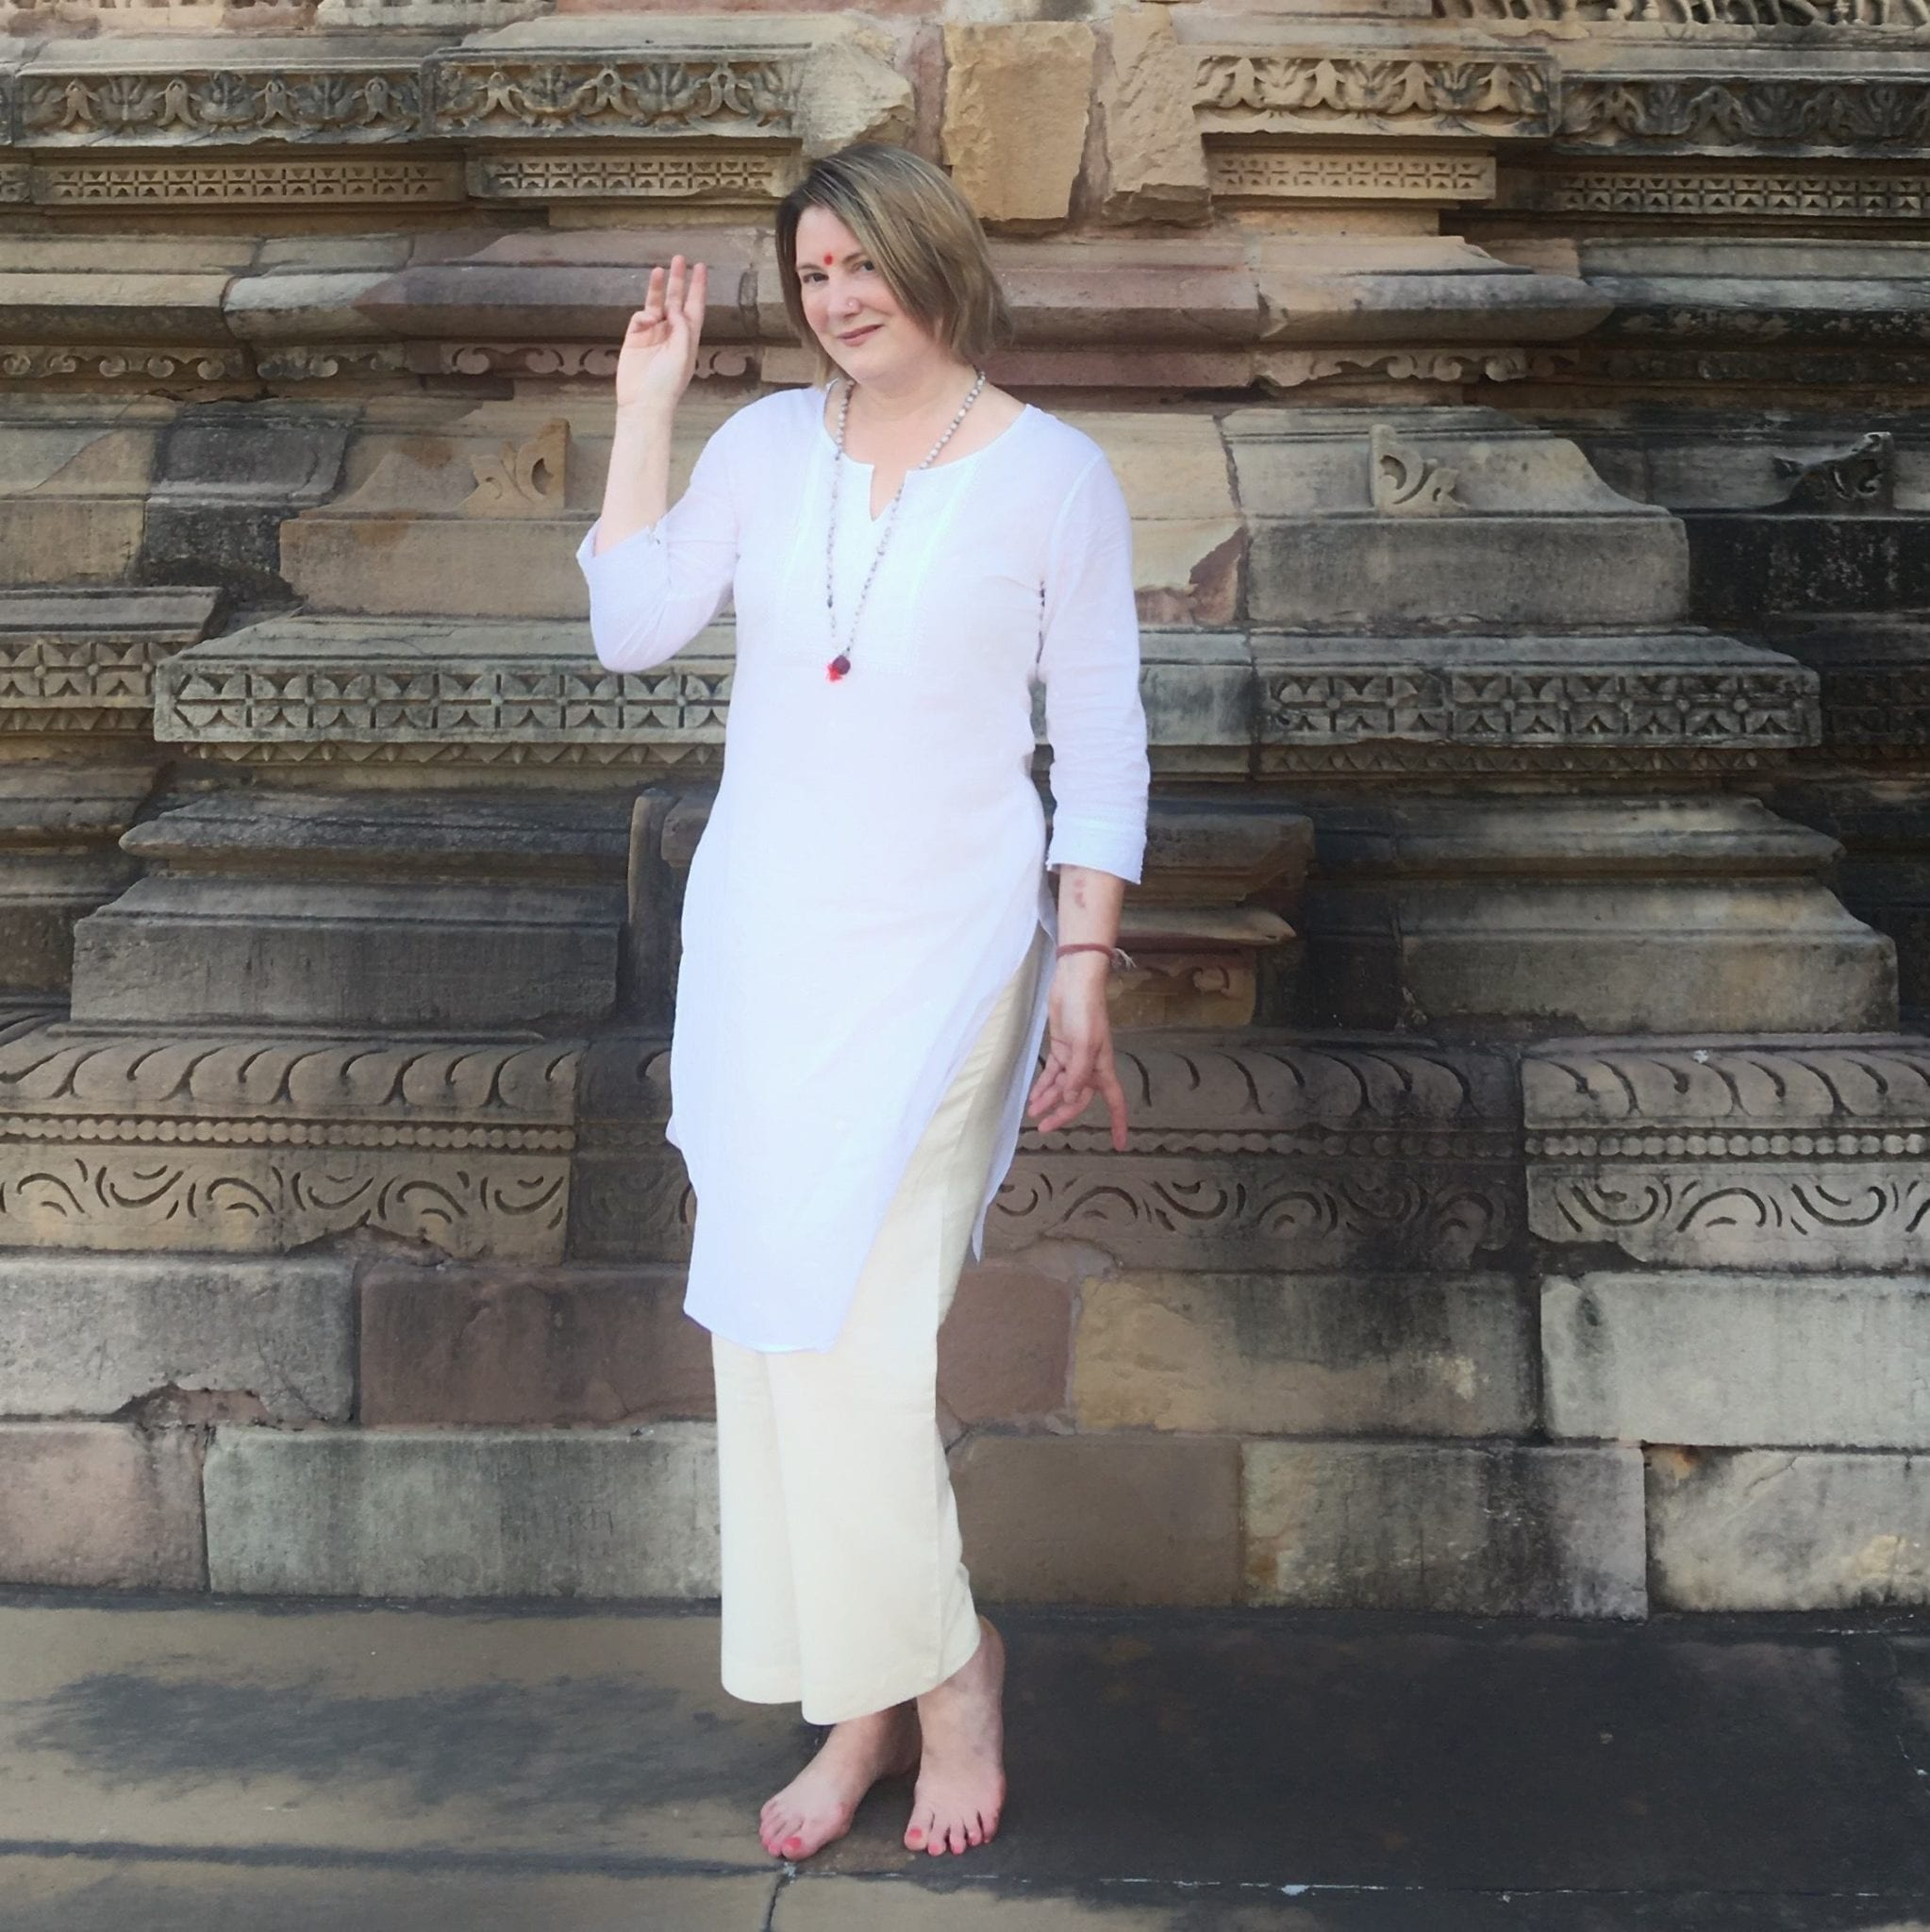 Mariellen Ward wearing a white top and tan trousers, posing in a temple in Khajuraho, India.